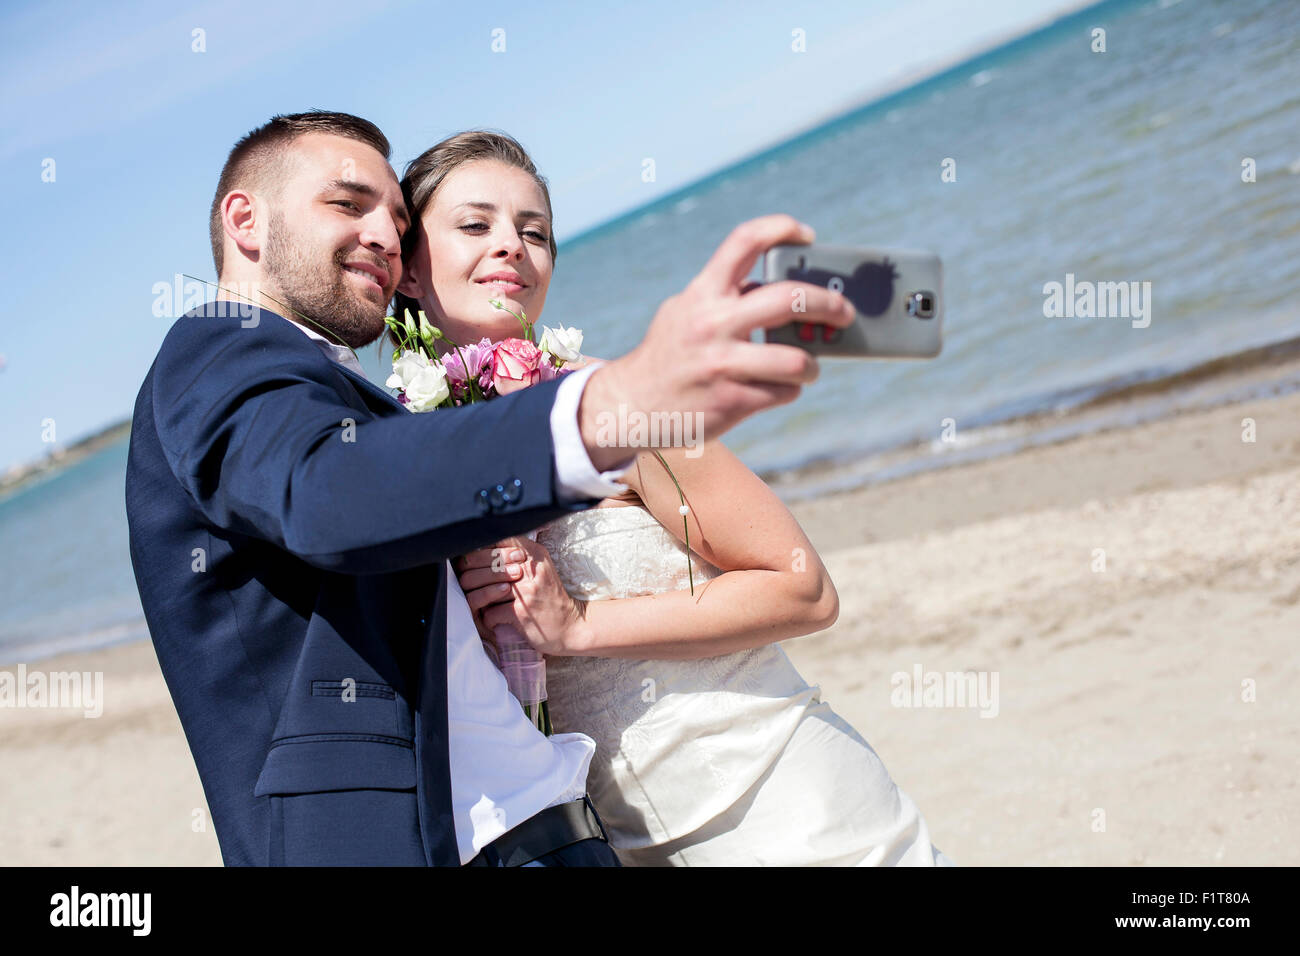 Bride and groom taking photo of themselves - Stock Image